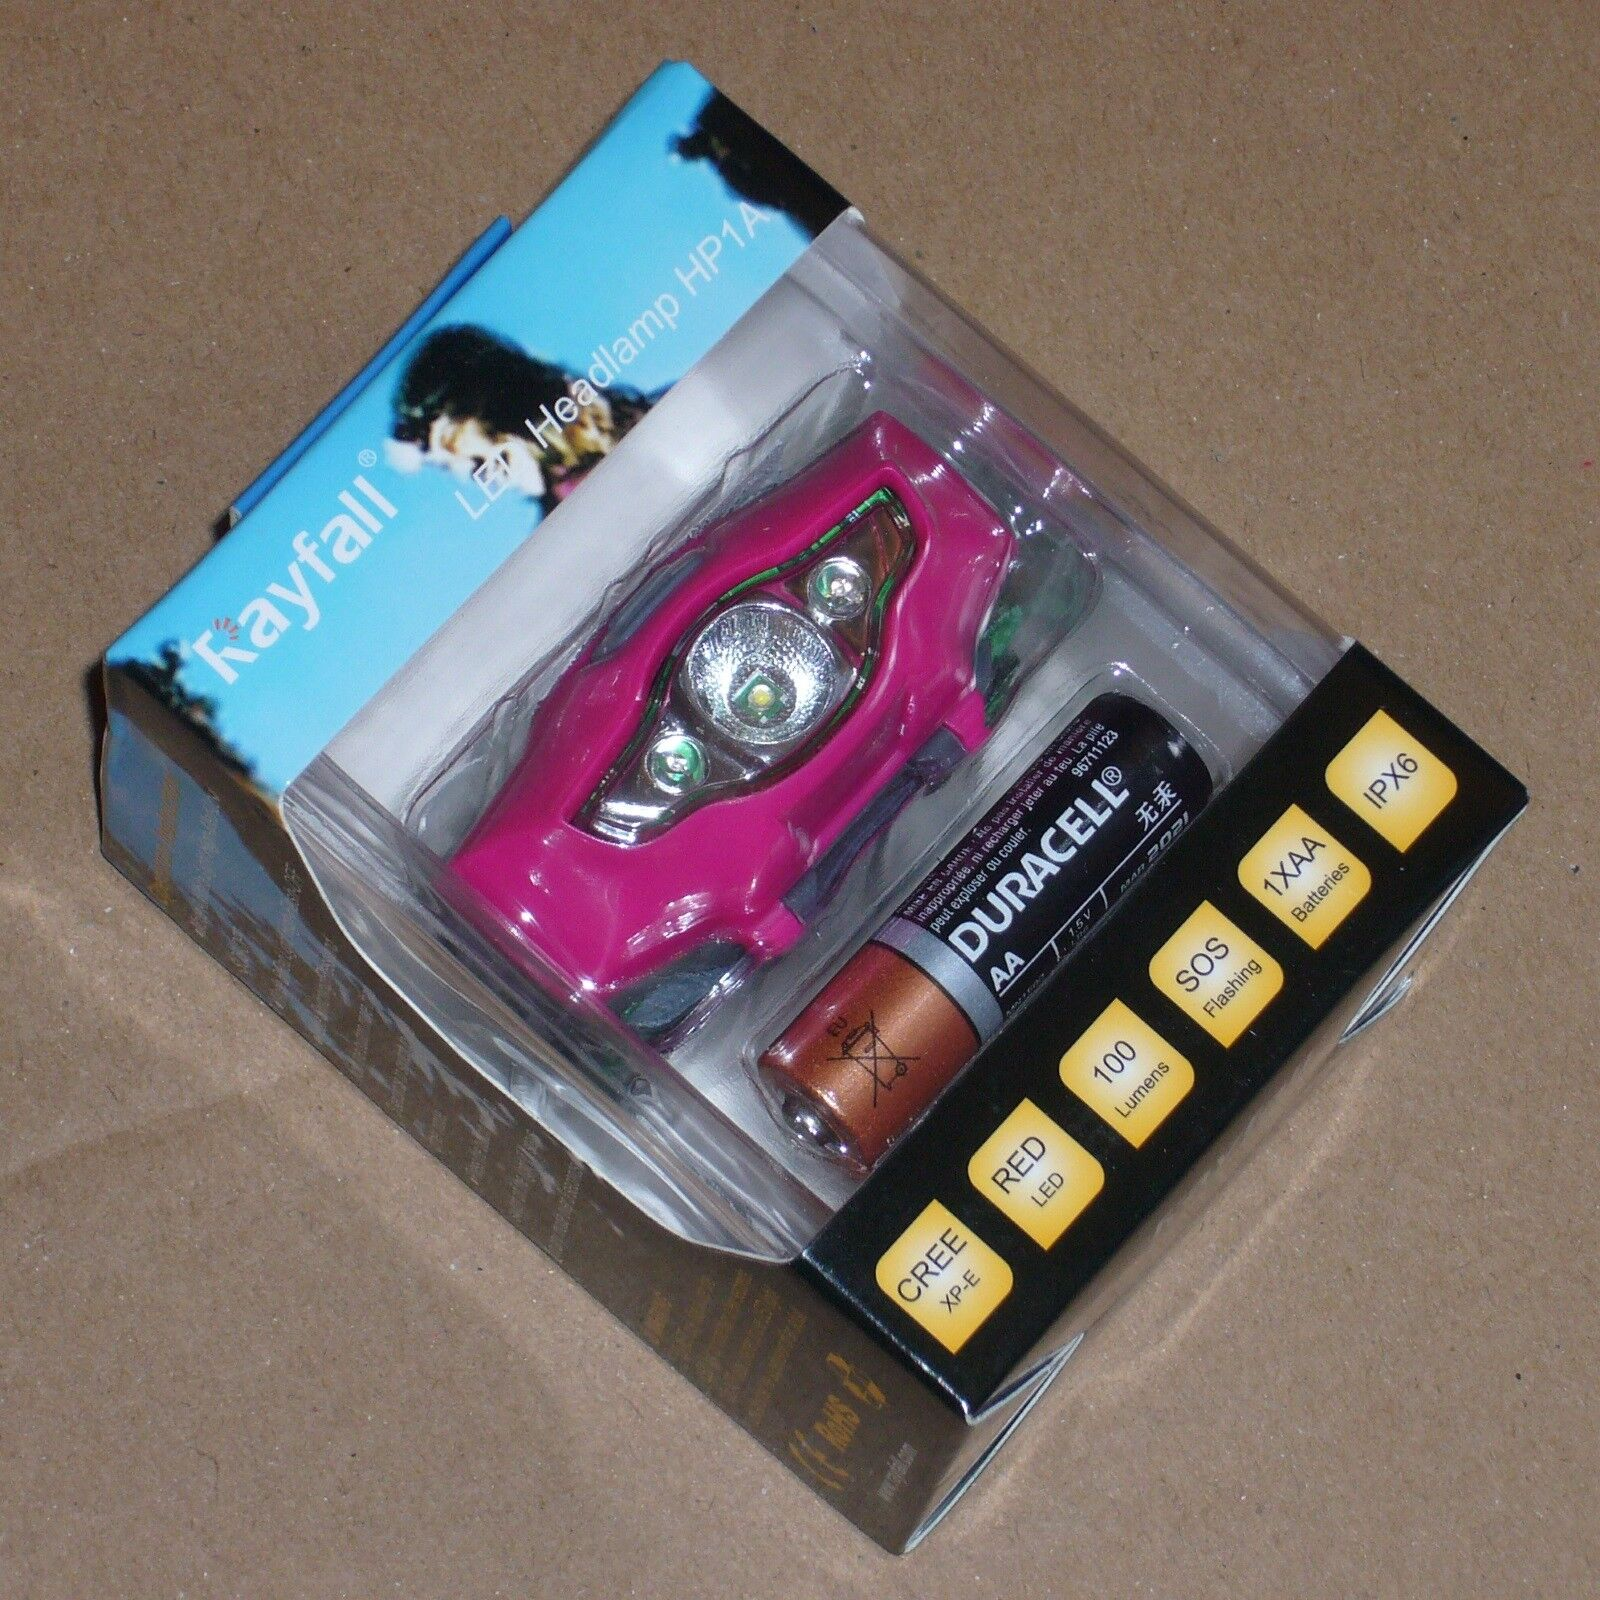 Running Head Torch, Ladies PINK, Super-Lightweight 35g, Super-Compact, Cree LED